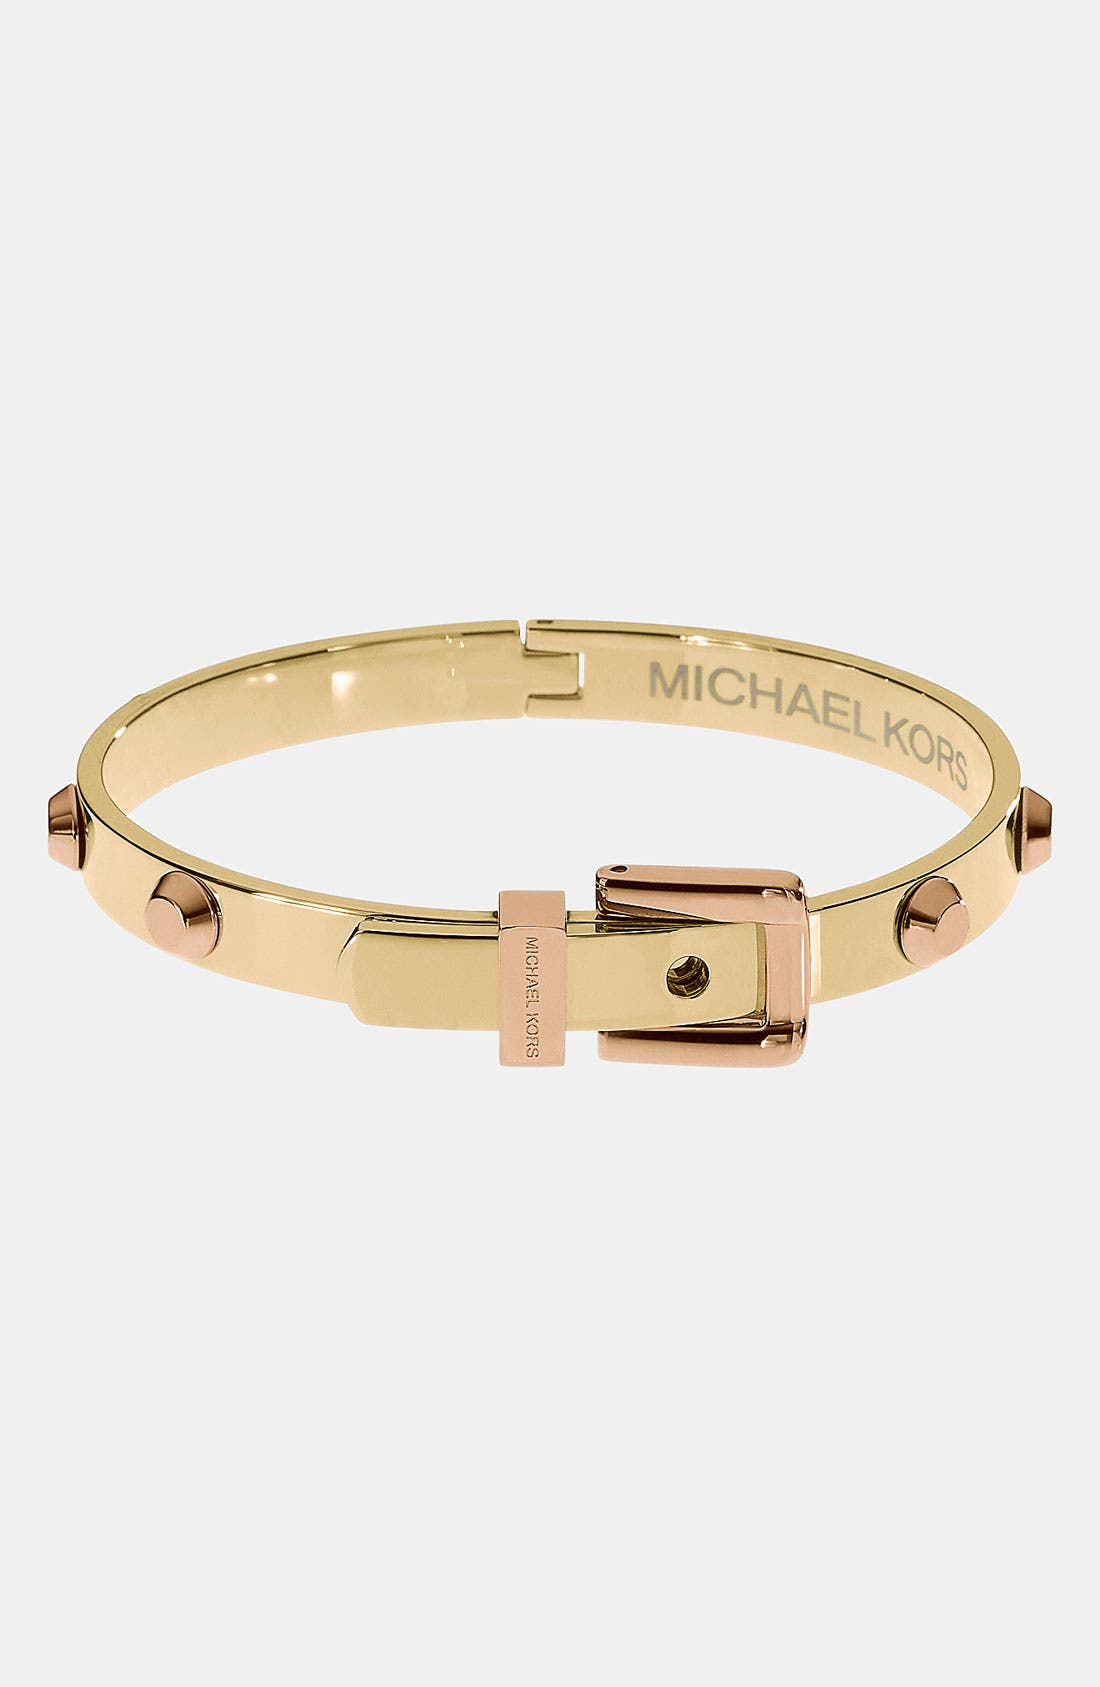 Main Image - Michael Kors 'Astor' Buckle Bangle